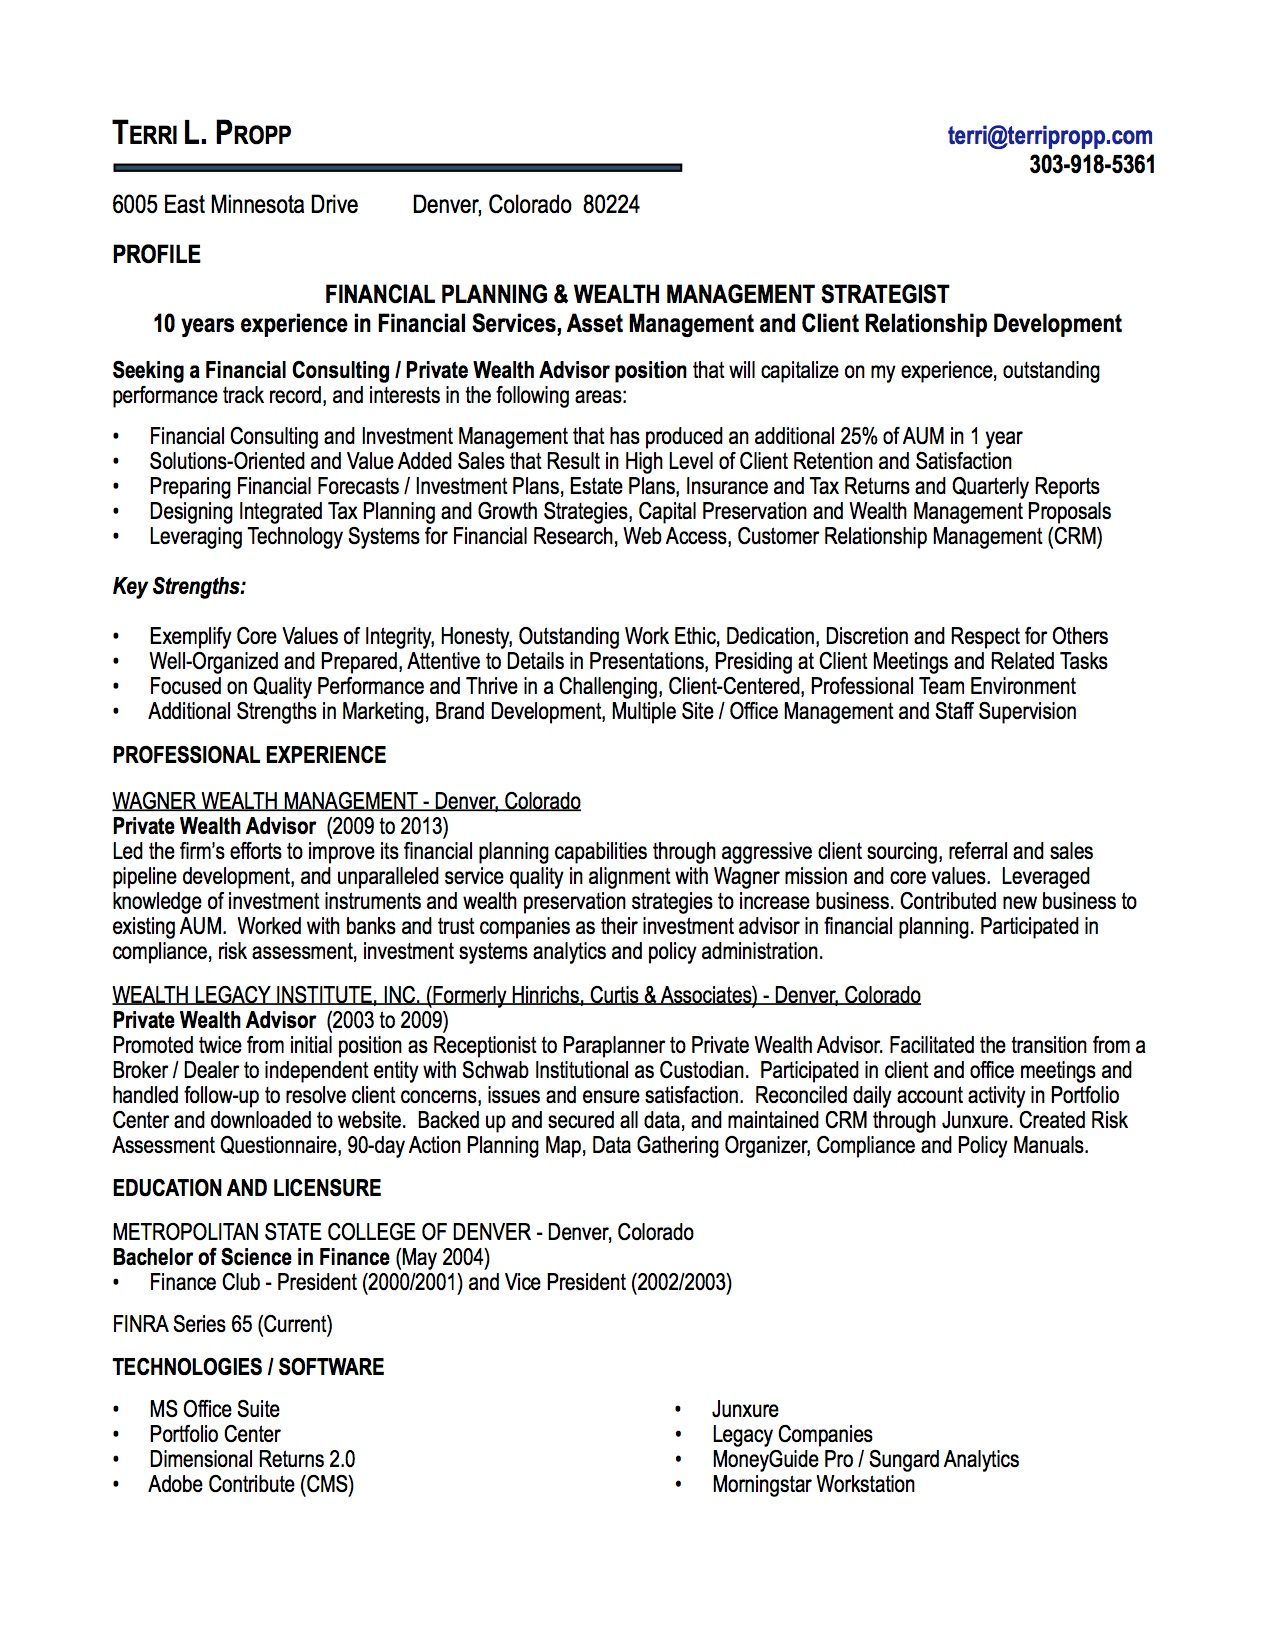 Tips for Preventing Cheating Plagiarizing On PapersWritten resume